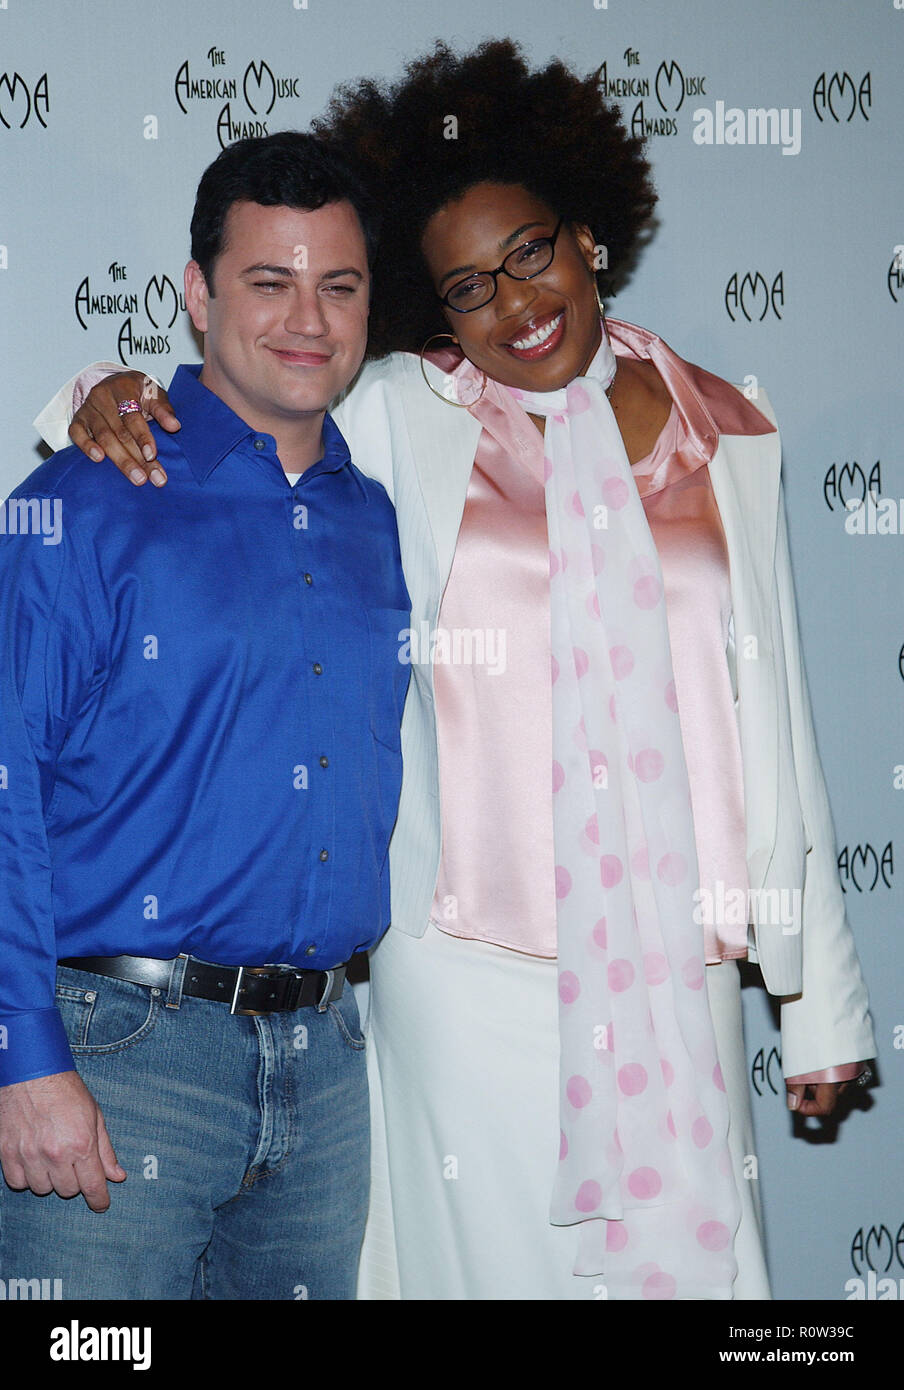 Jimmy Kimmel and Macy Gray presenting the nominees at the American Music Awards at the Beverly Hills Hotel in Los Angeles. September 16, 2003.         - Stock Image